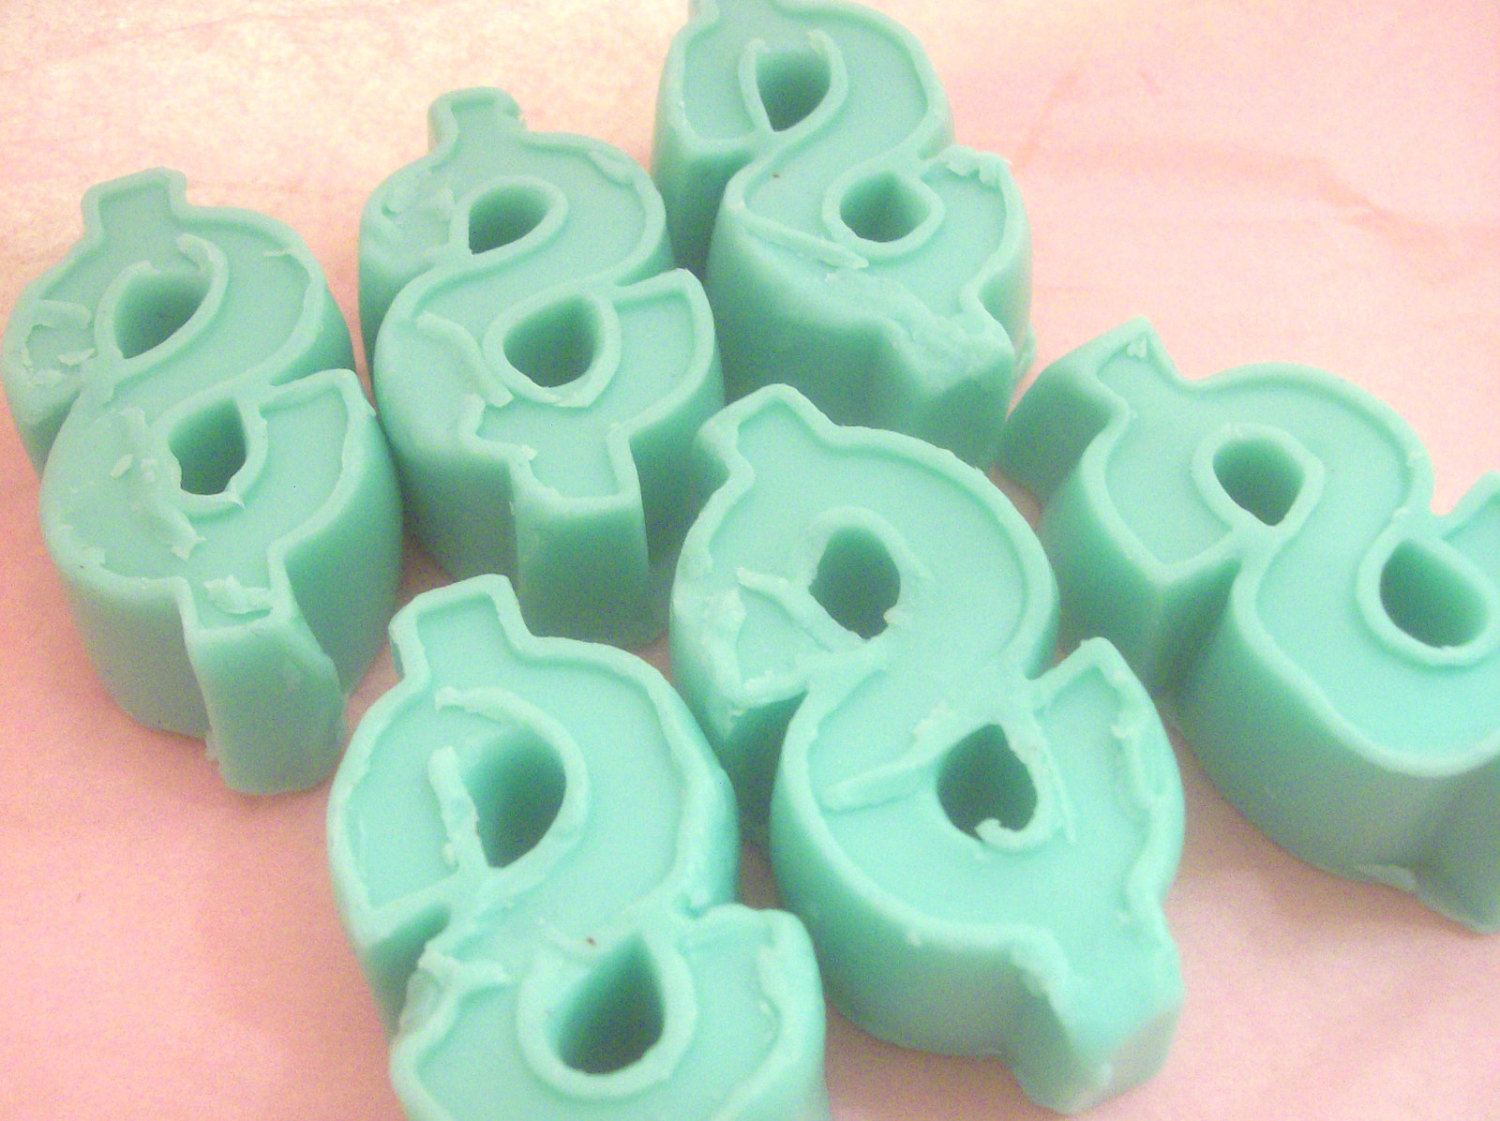 dollar sign kids soaps, money soap, kids soap, party favors, stocking stuffer, s